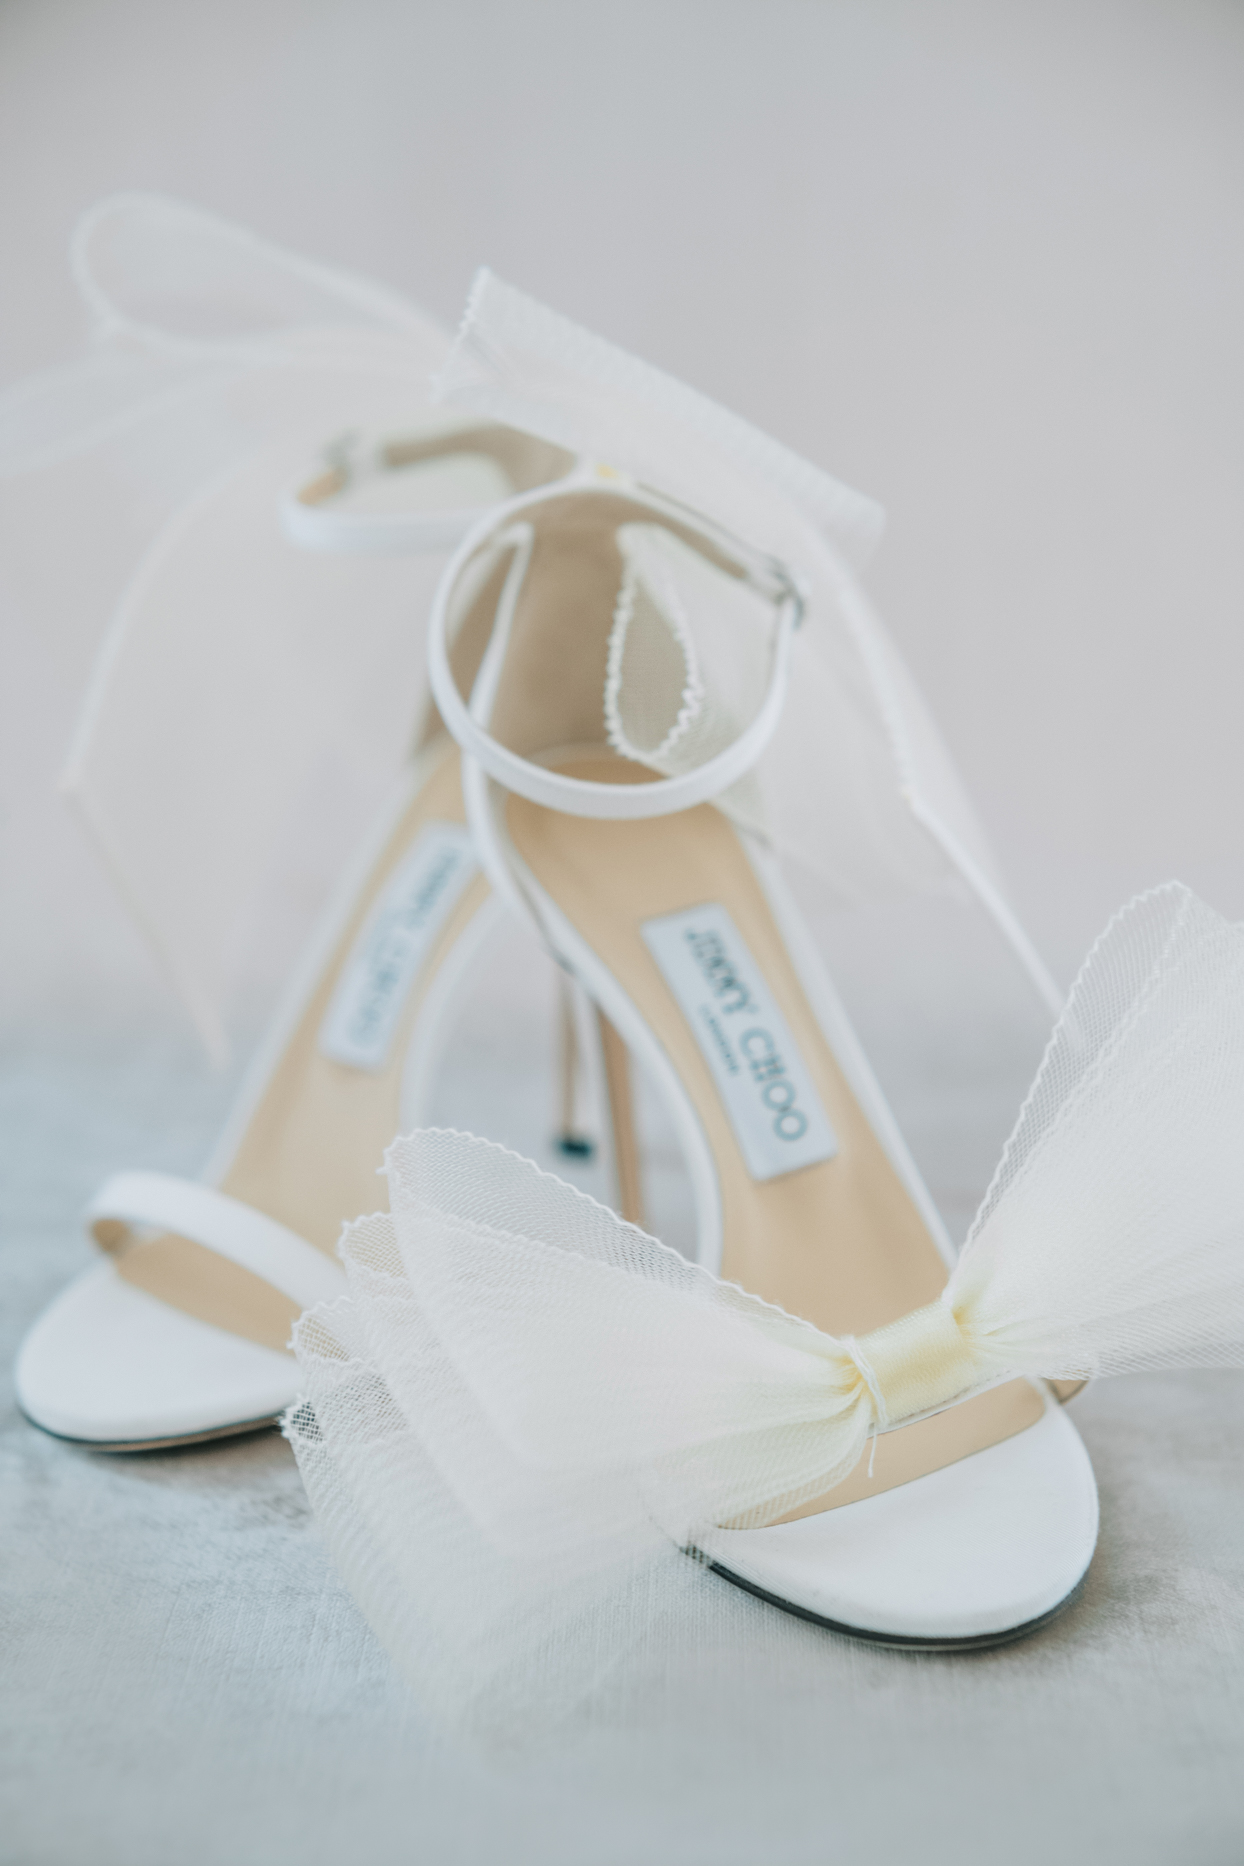 white jimmy choo shoes with bow details